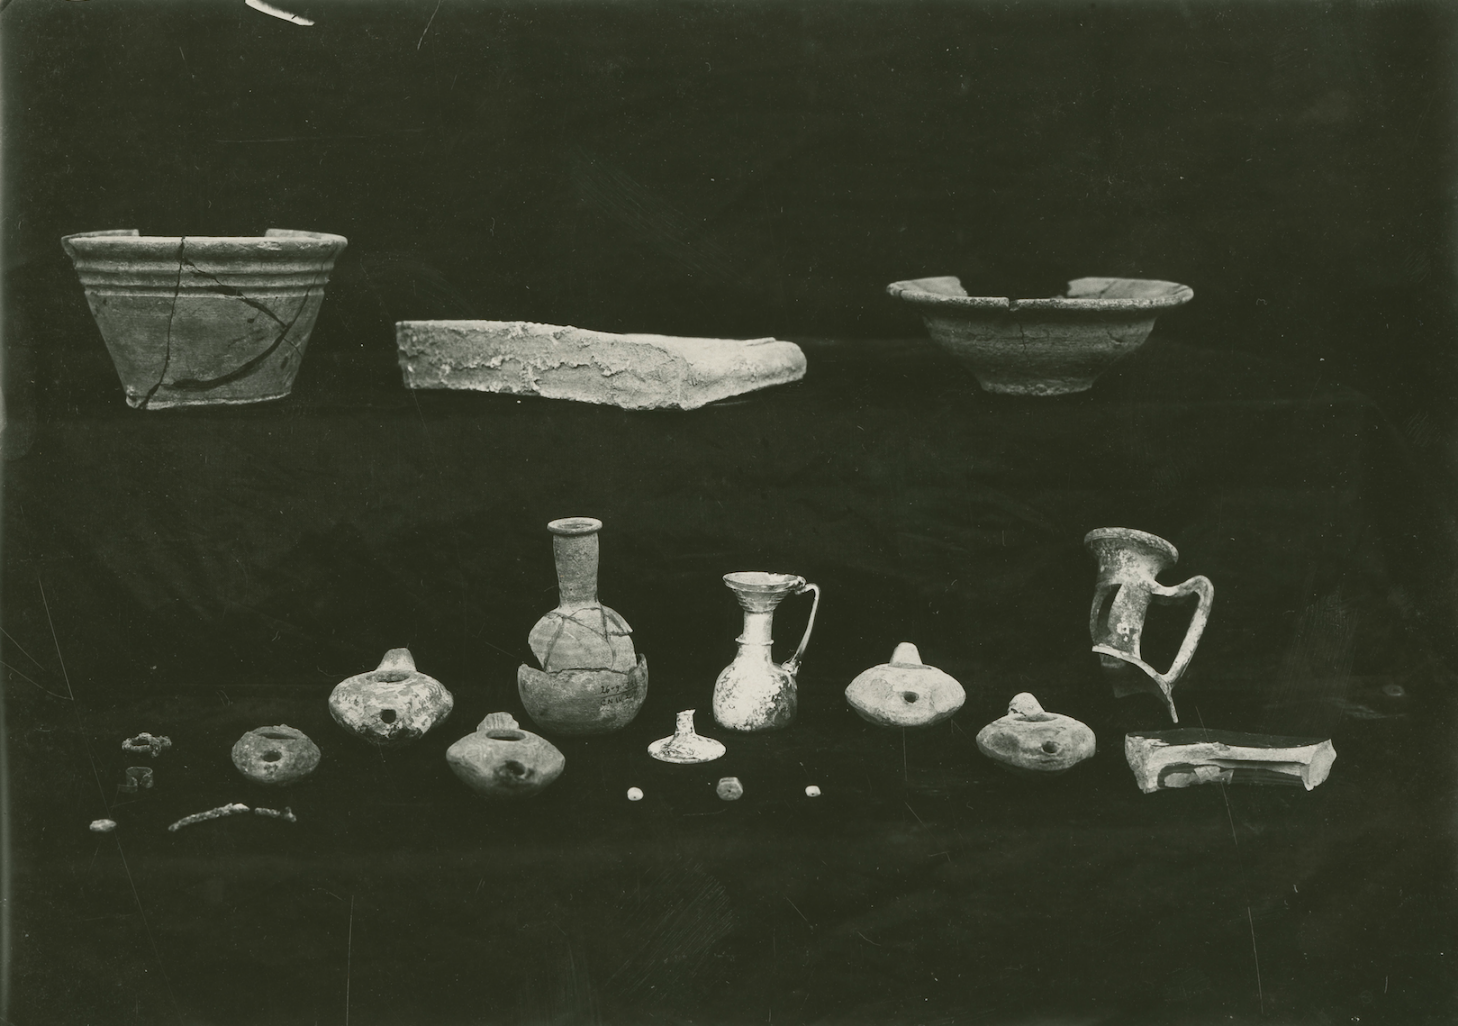 Photograph of the objects, including the jug located at the center, found in Tomb 207